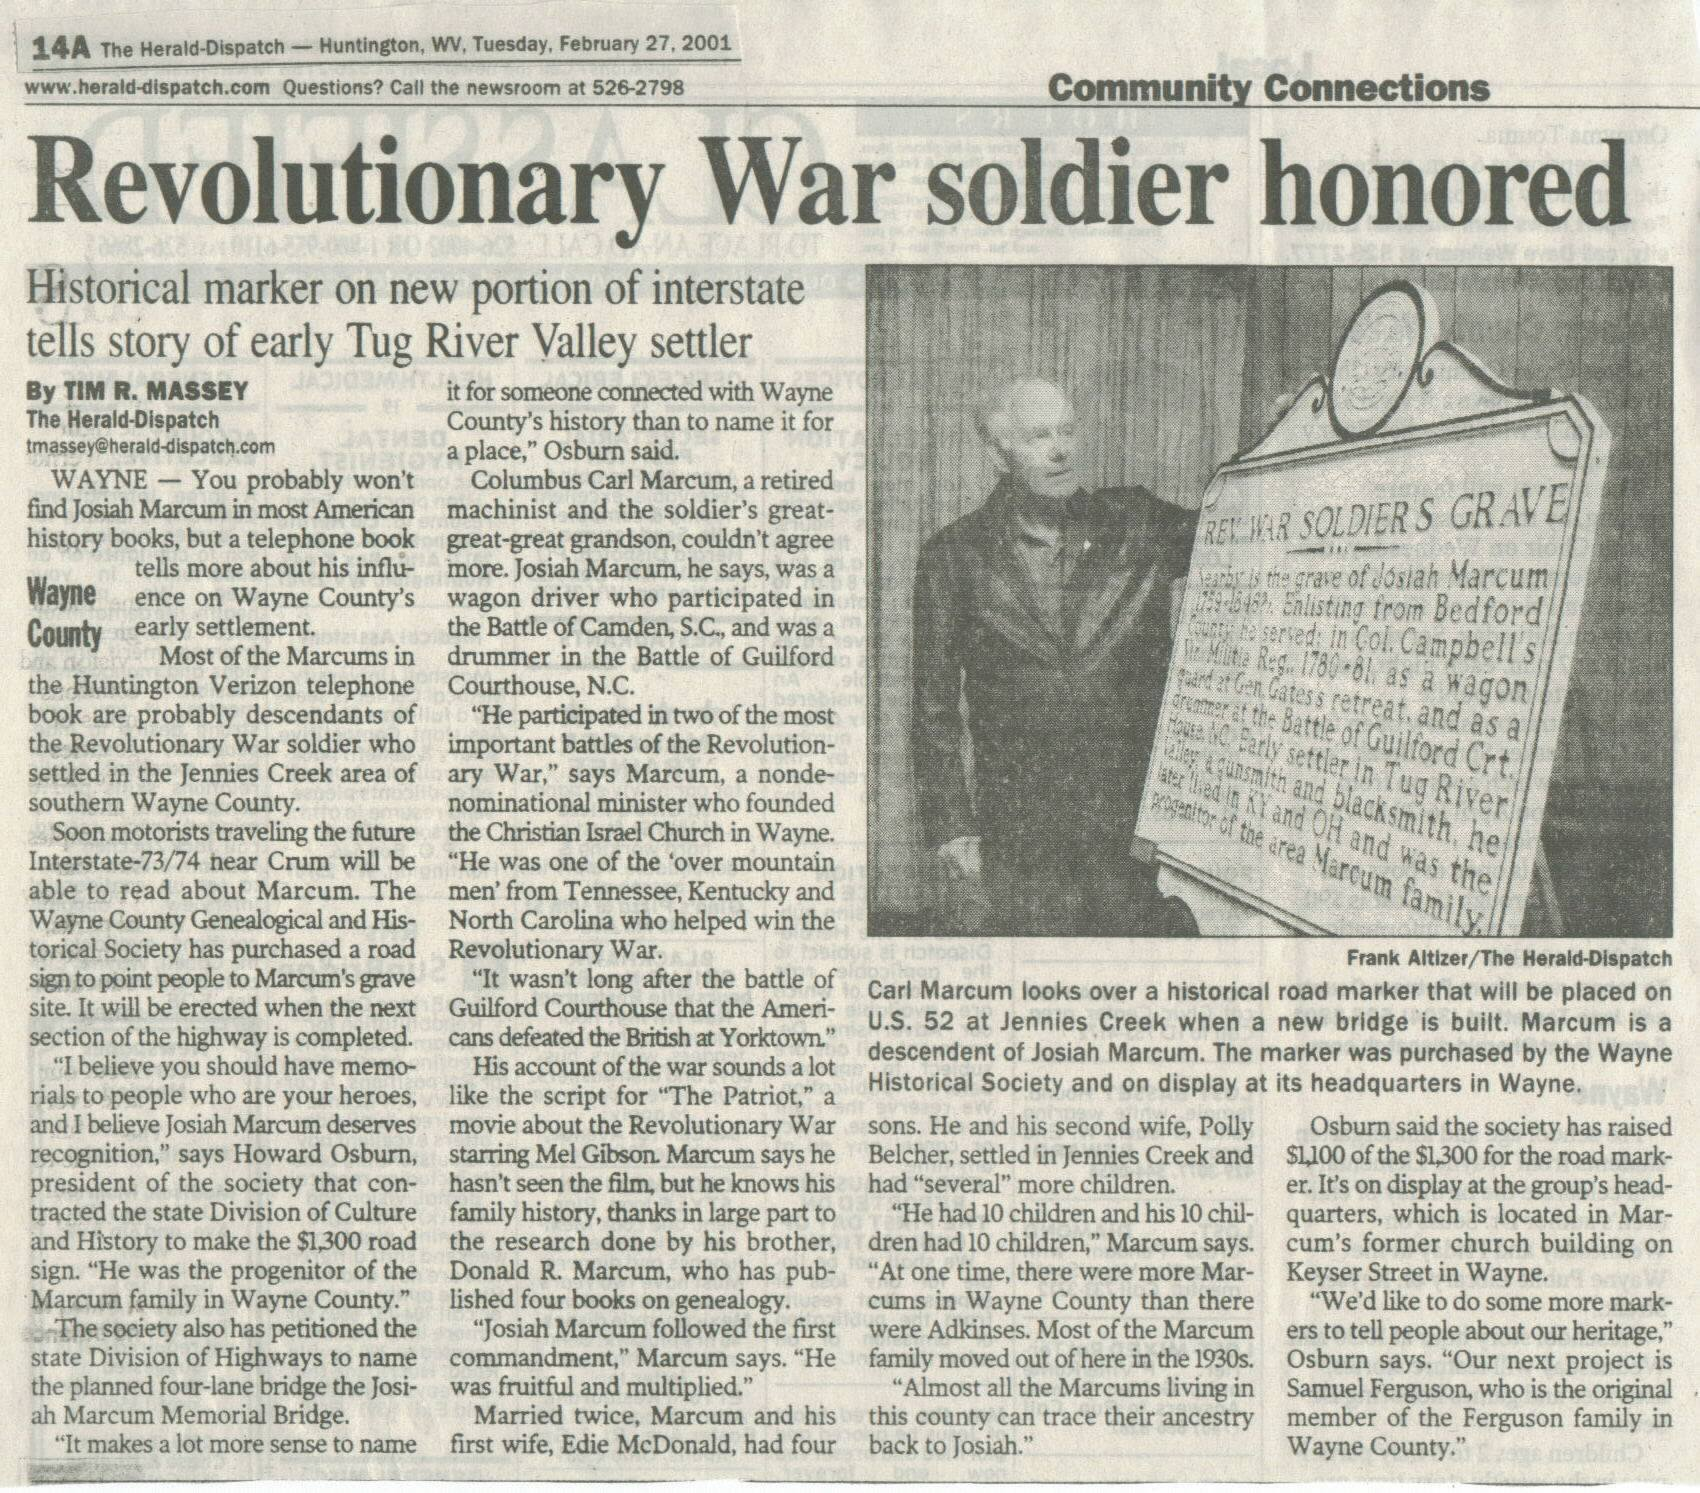 2001 newspaper article about Marcum and the commissioning of the Historical marker.